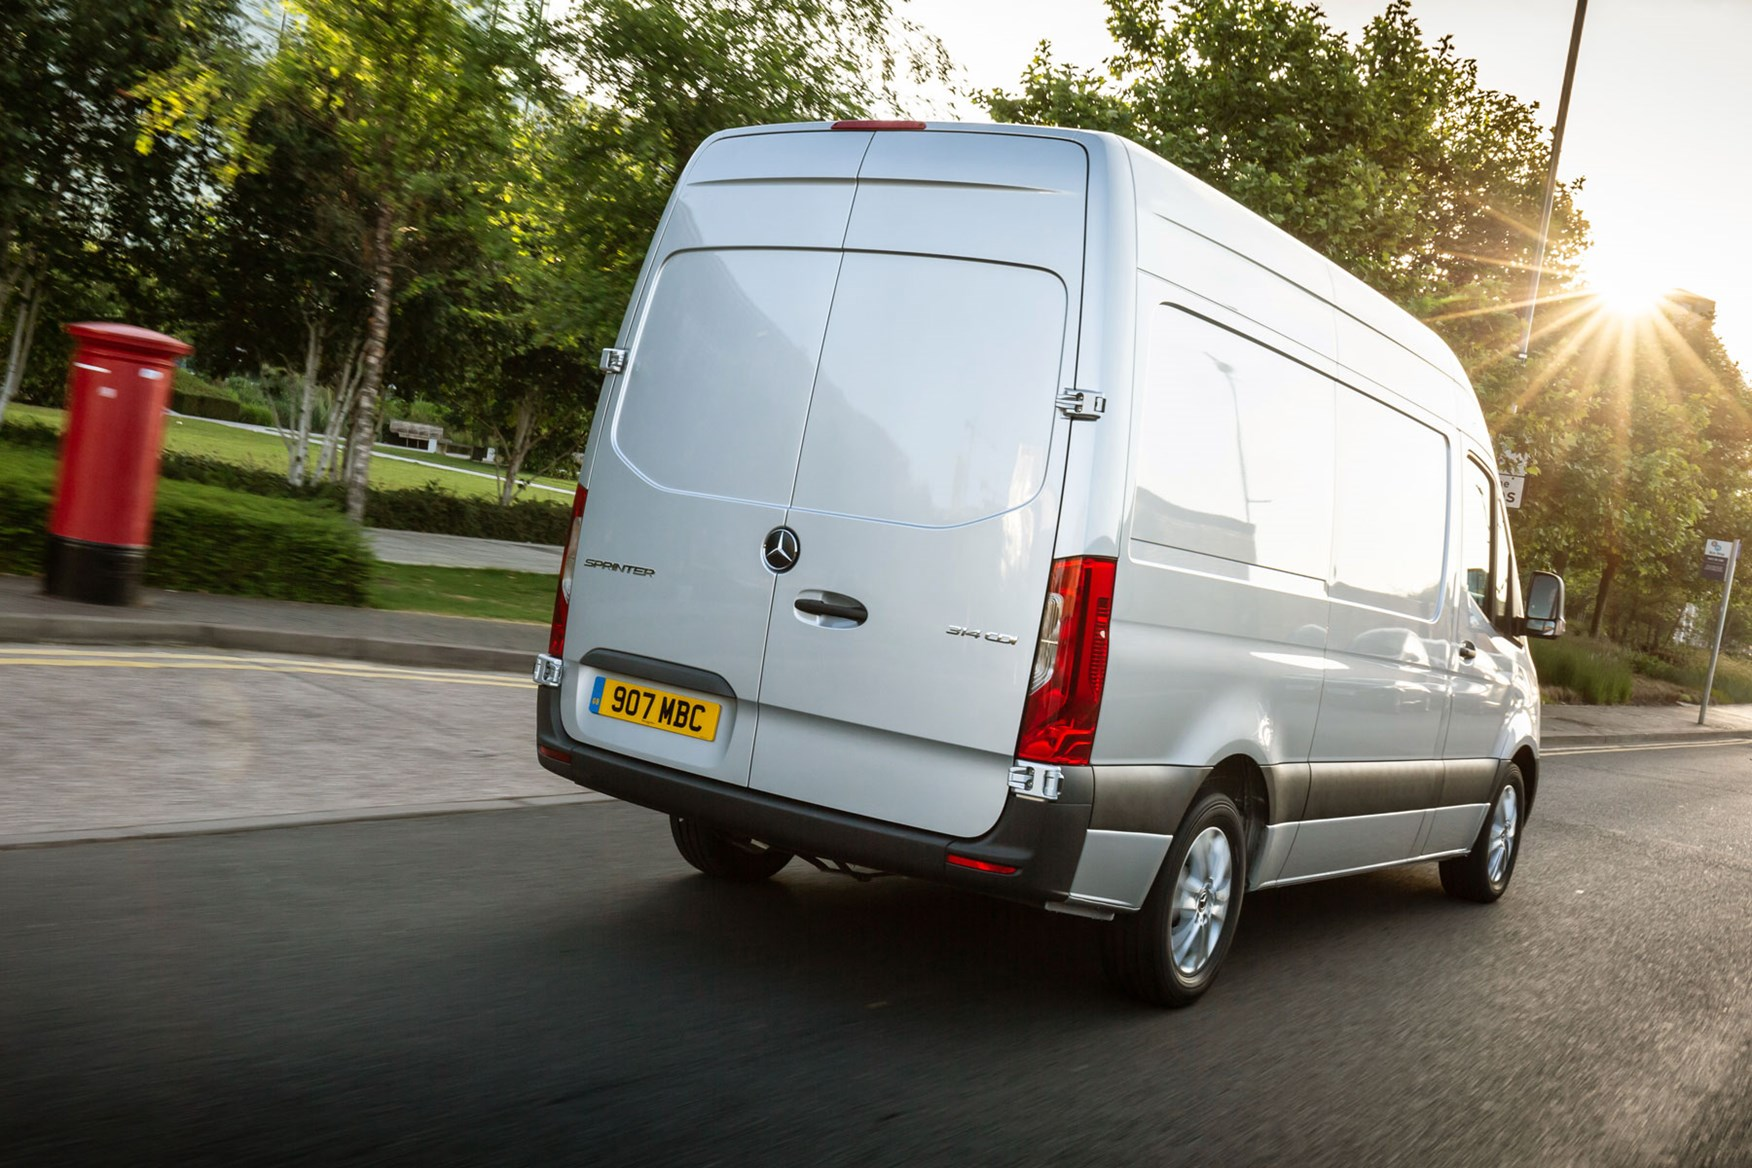 Mercedes Sprinter (2018-on), rear view, silver, UK, driving